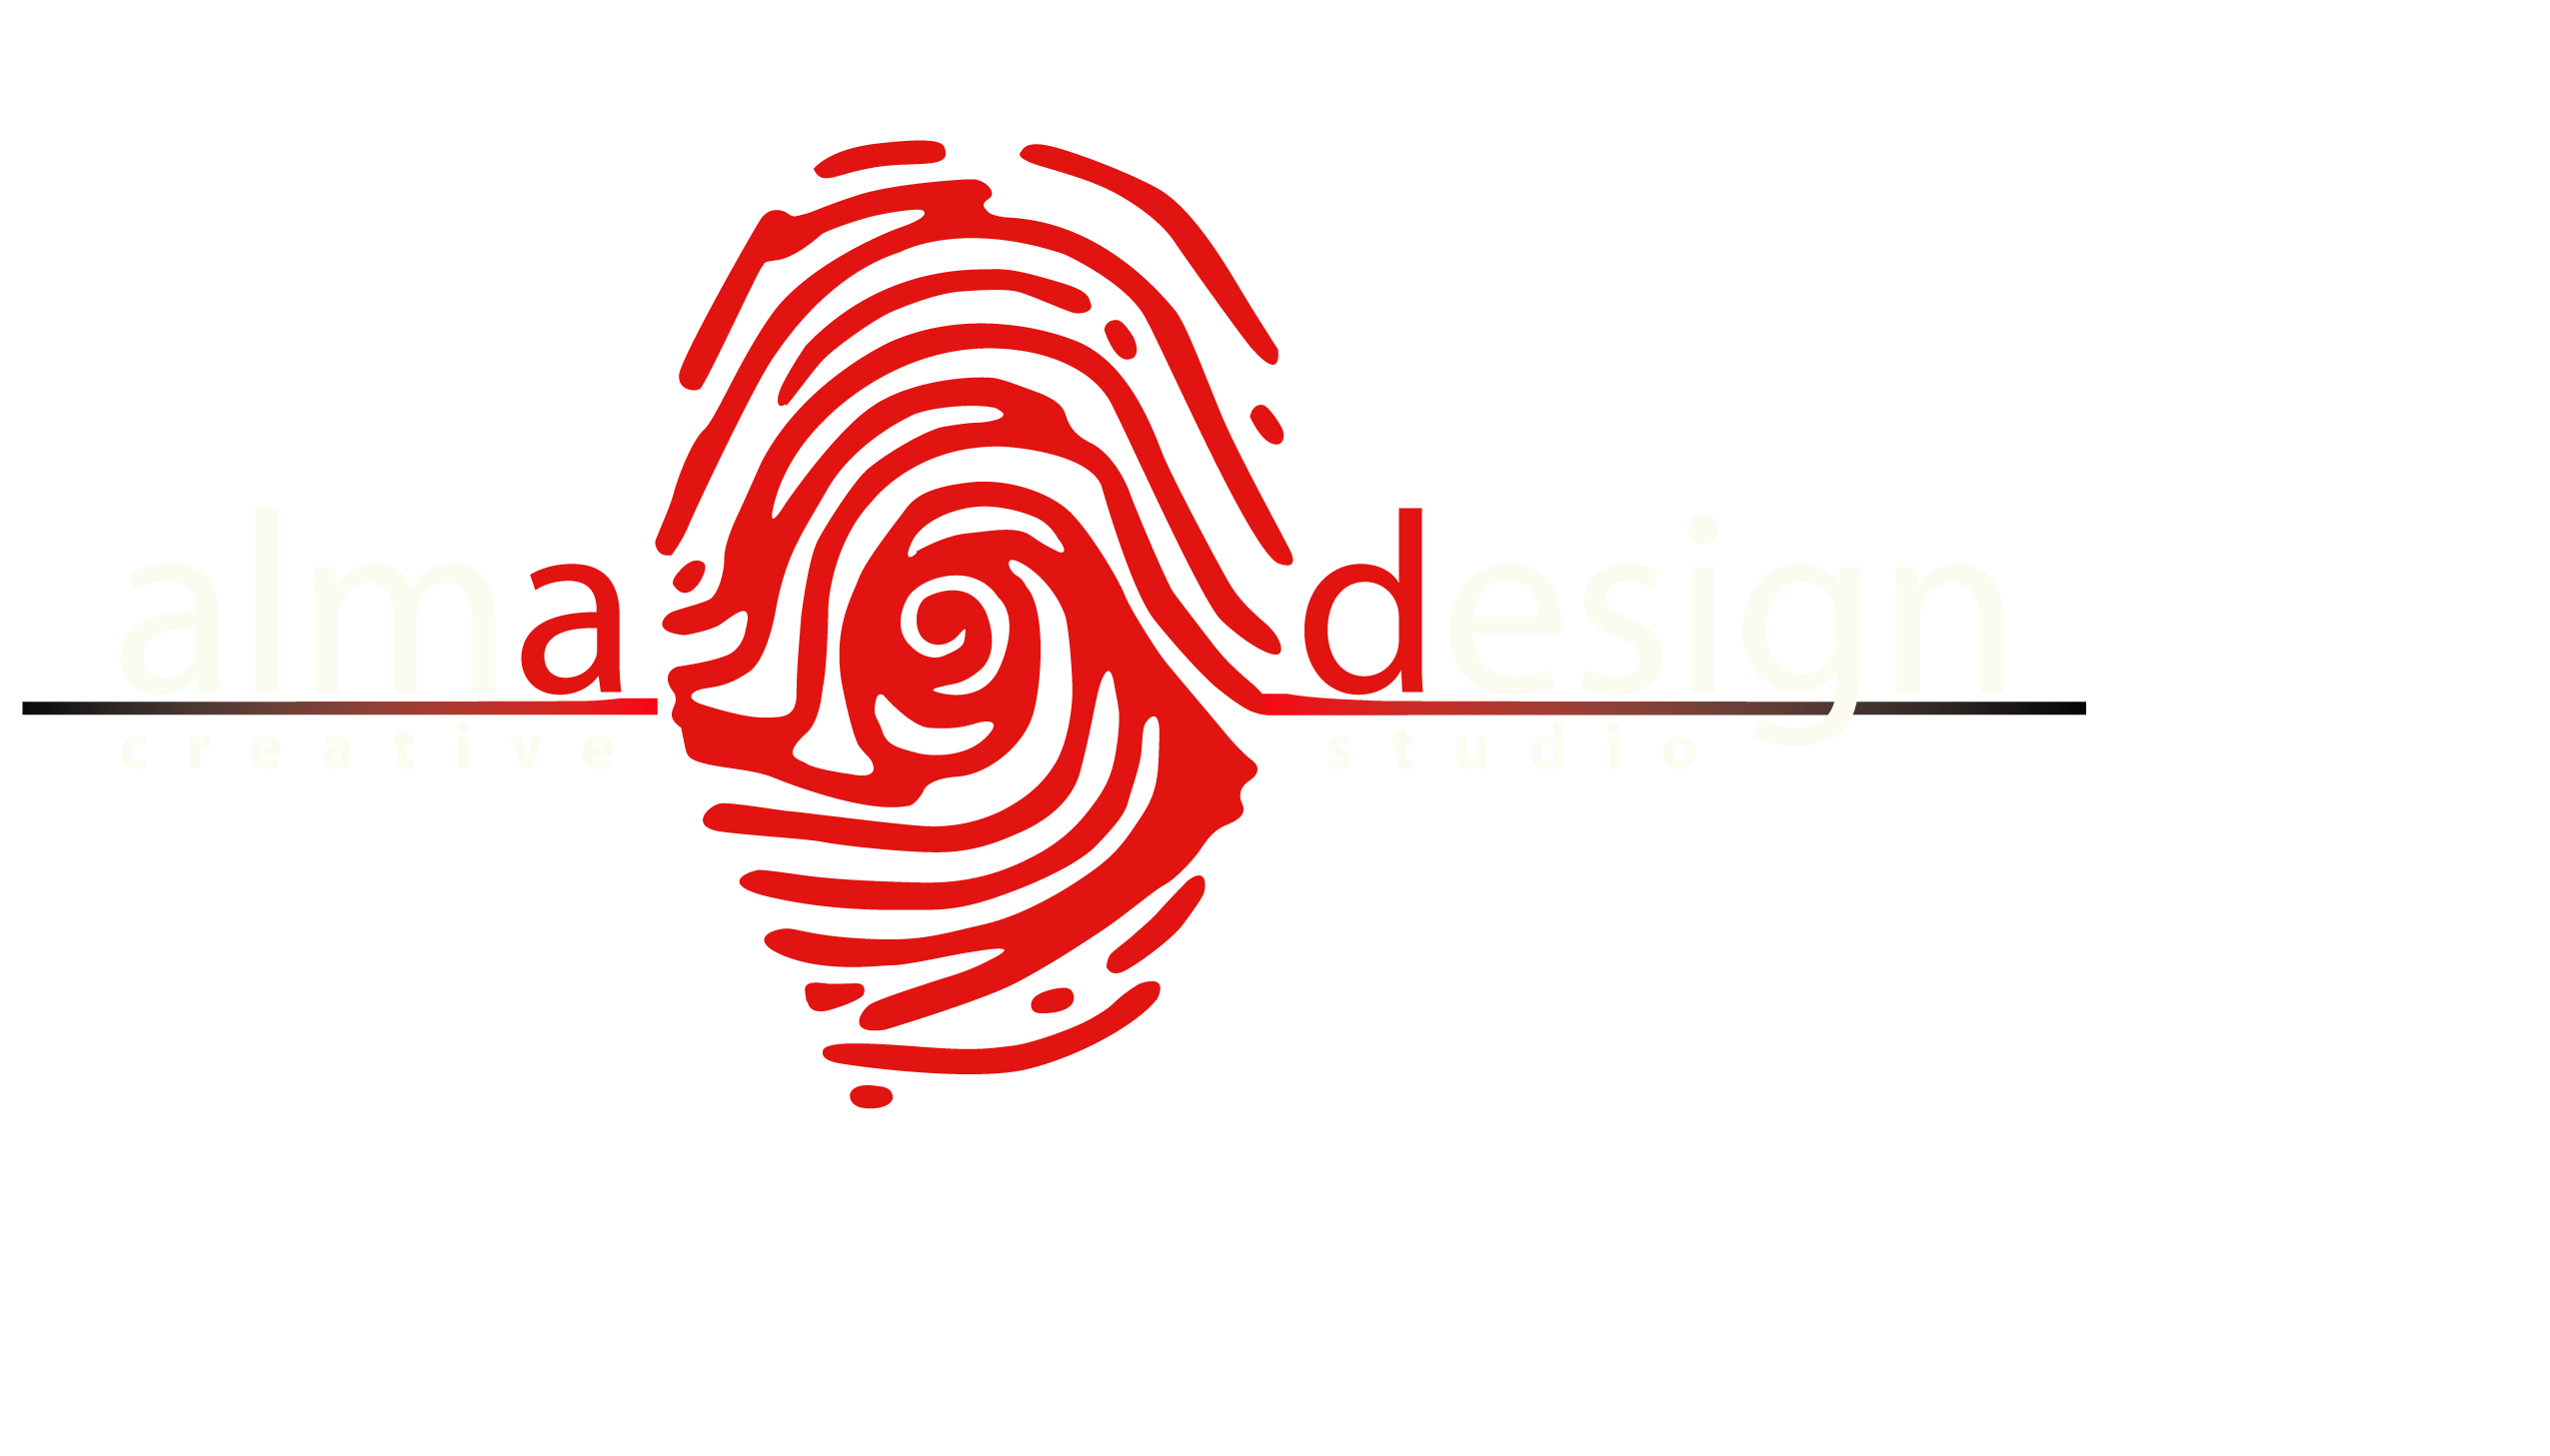 almadesign creative studio